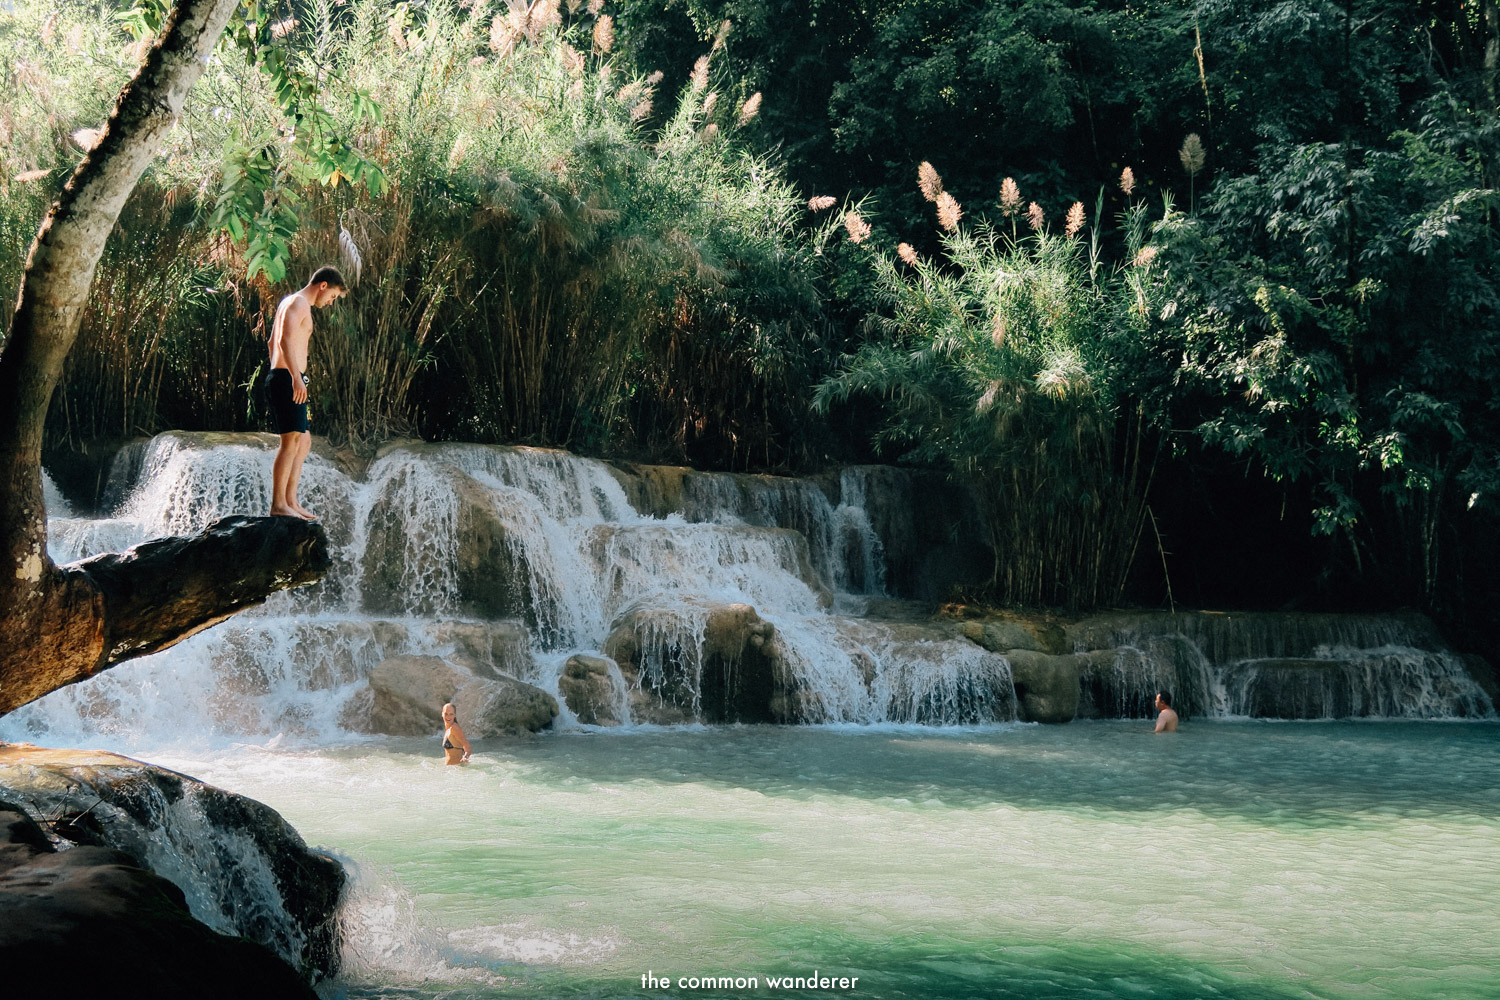 swimming in the lower pools of Kuang Si waterfall